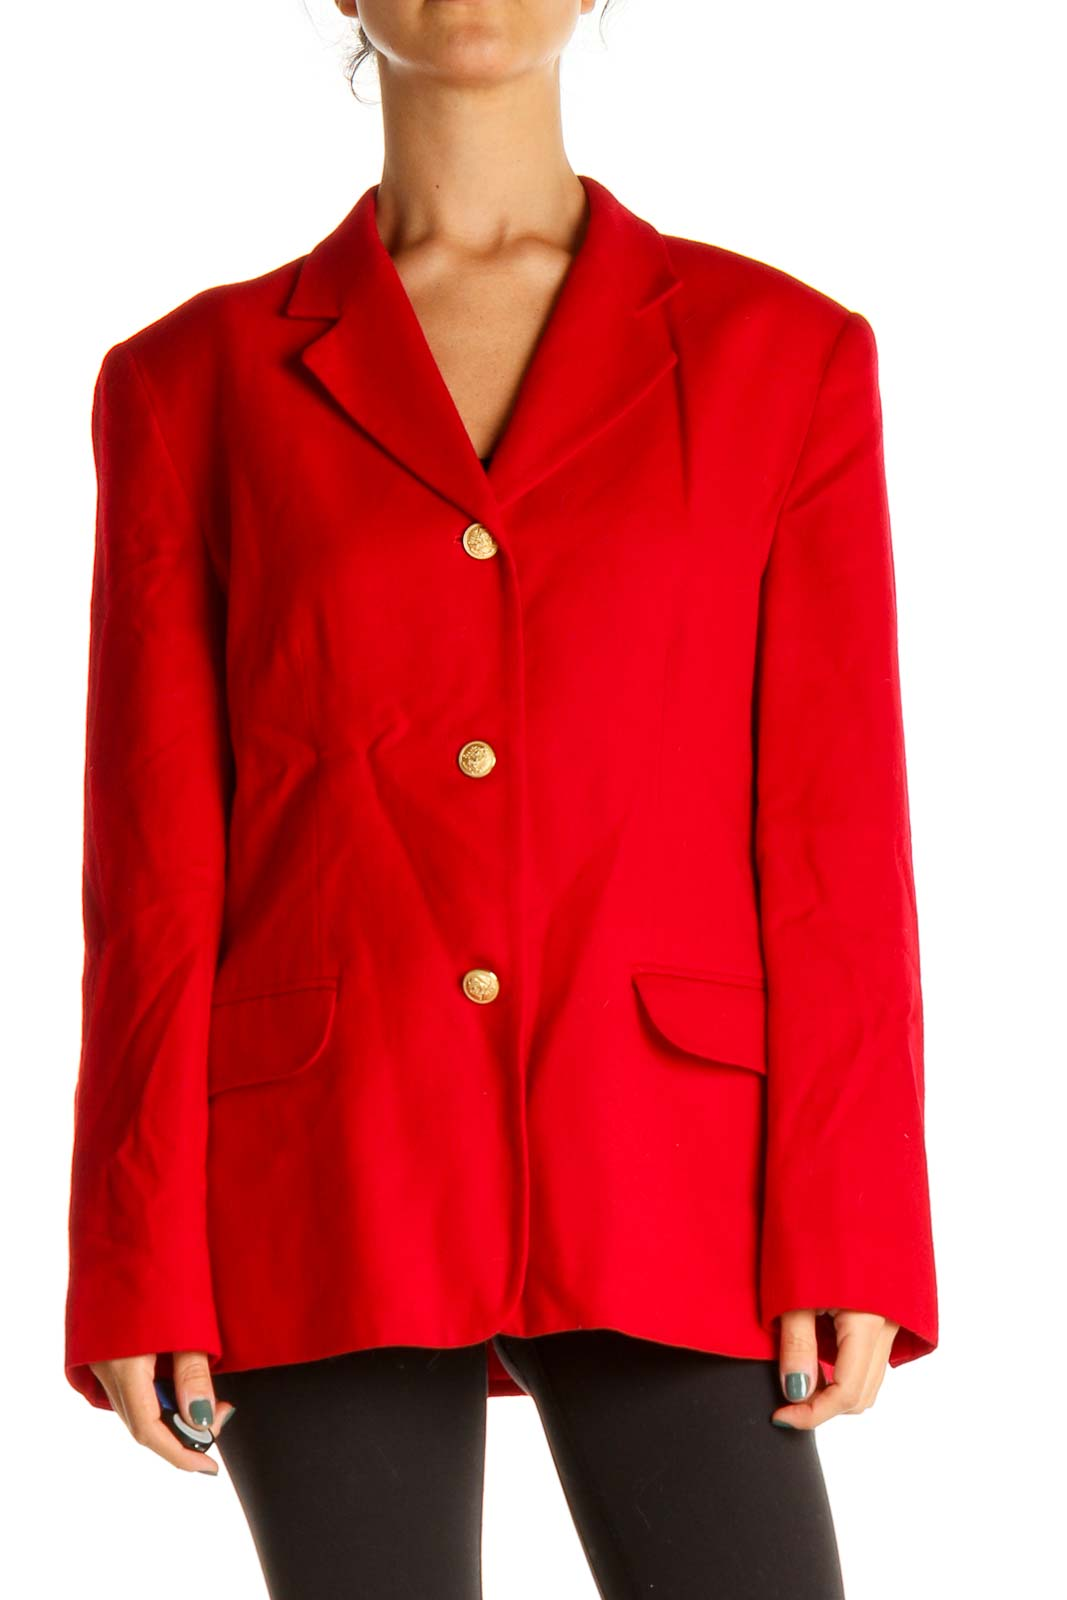 Red Jacket Front